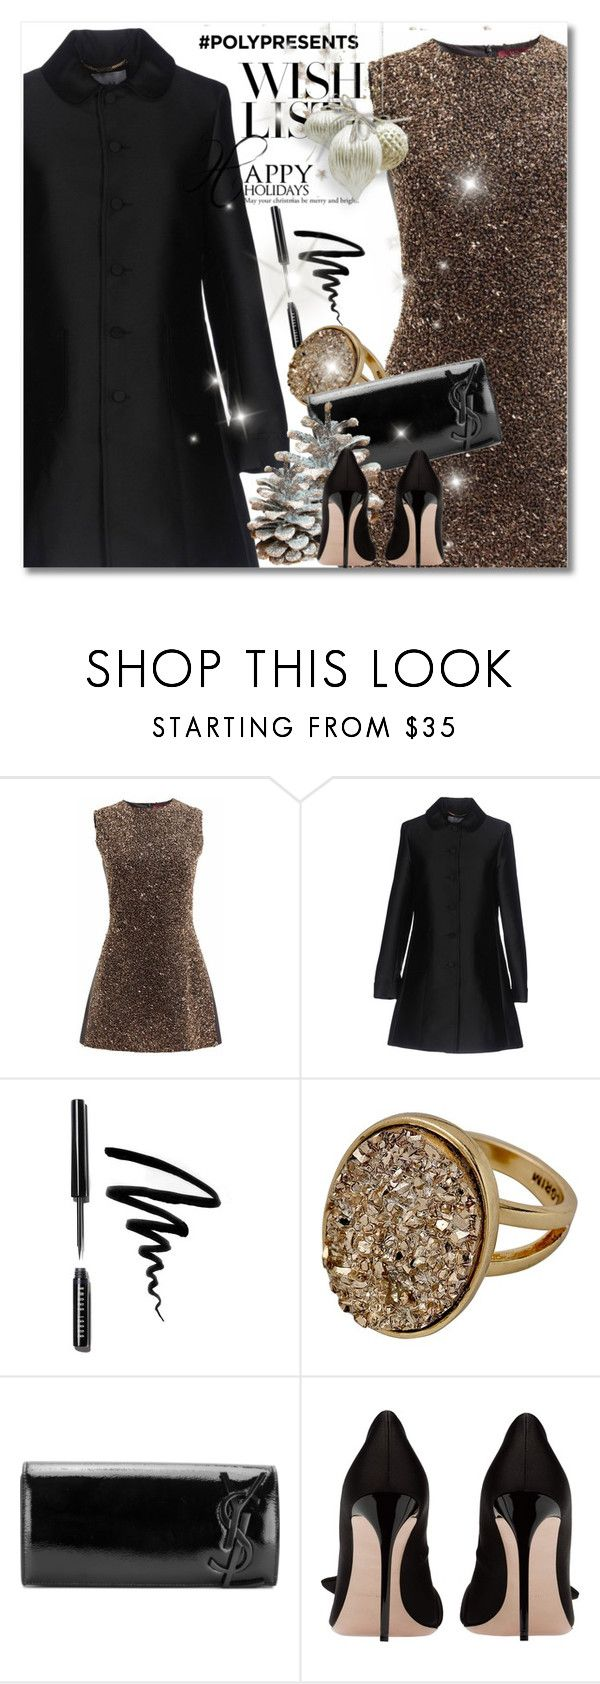 """""""#PolyPresents: Wish List"""" by andrejae ❤ liked on Polyvore featuring Blugirl, Bobbi Brown Cosmetics, Yves Saint Laurent, contestentry and polyPresents"""